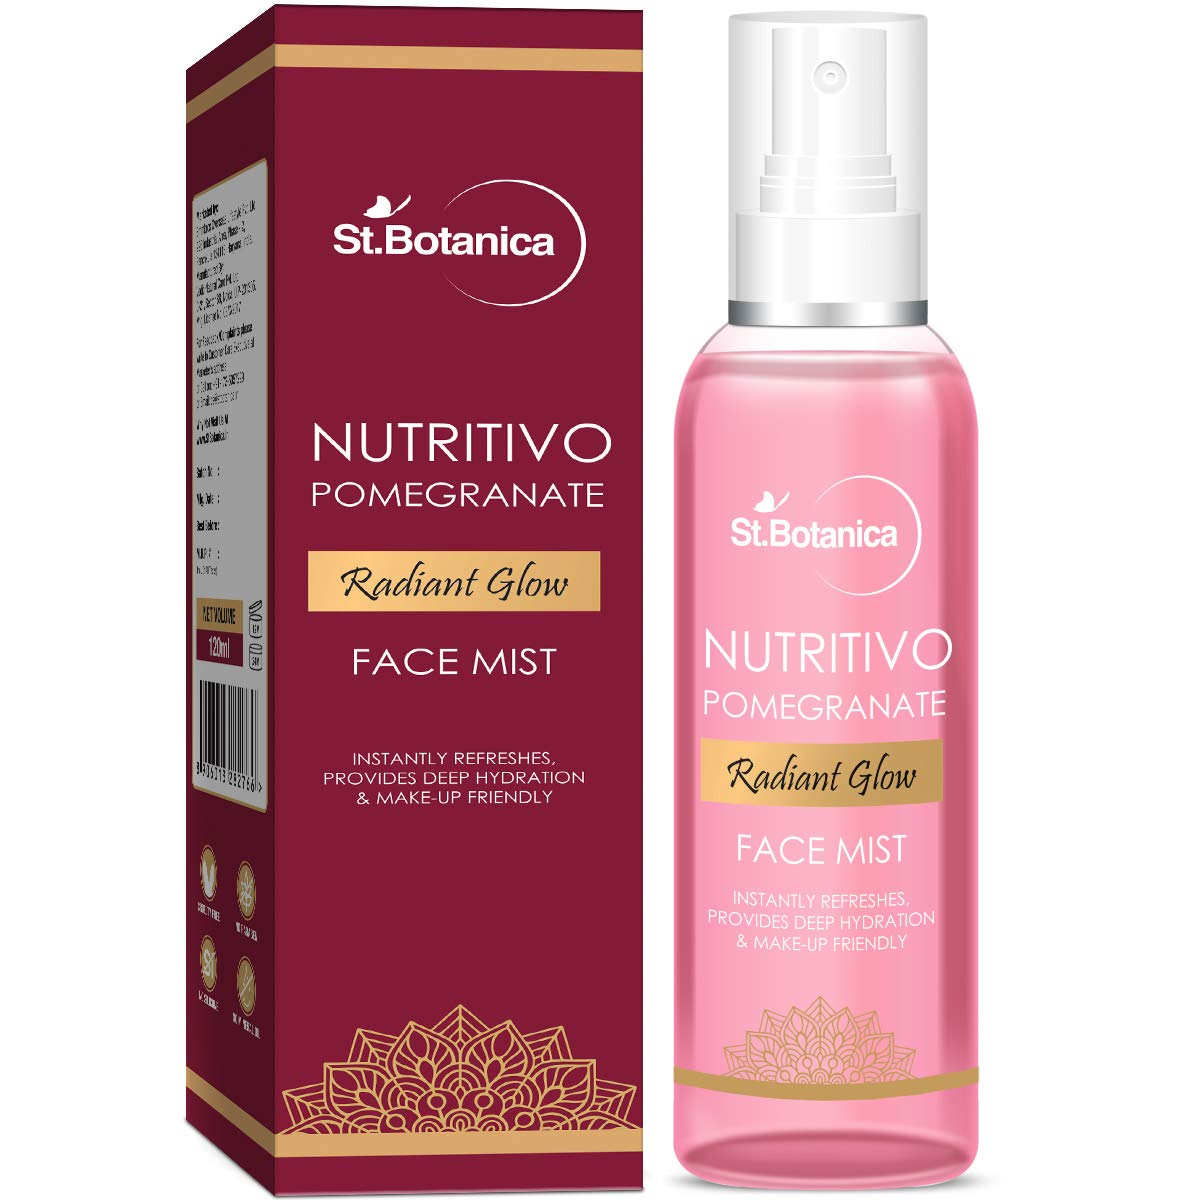 StBotanica NUTRITIVO Pomegranate Radiant Glow Face Mist, 120ml - Instantly Refreshes, Provides Deep Hydration & Makeup Friendly, No Parabens, Silicones product image